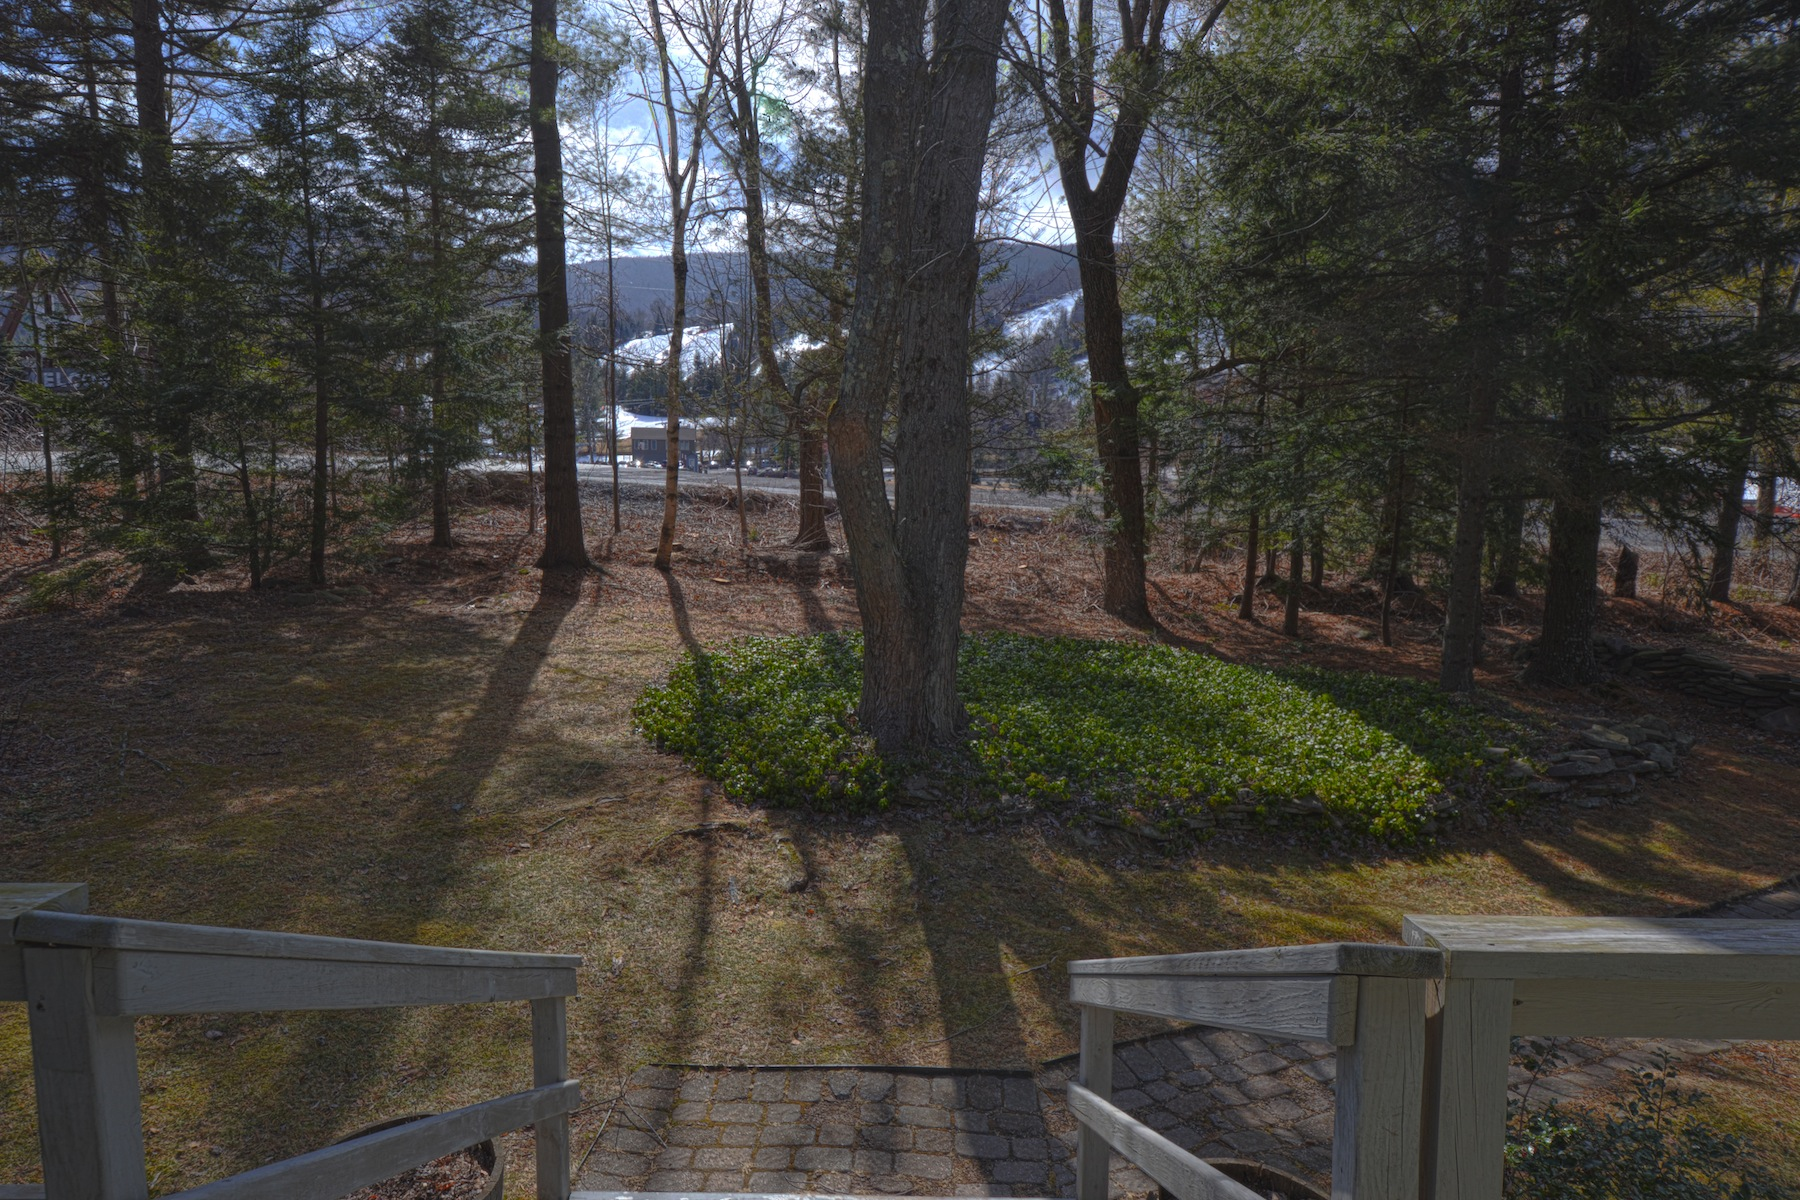 Single Family Home for Sale at 100k Rental Potential, Step onto Slopes 25 Berry Ln Hunter, New York, 12442 United States